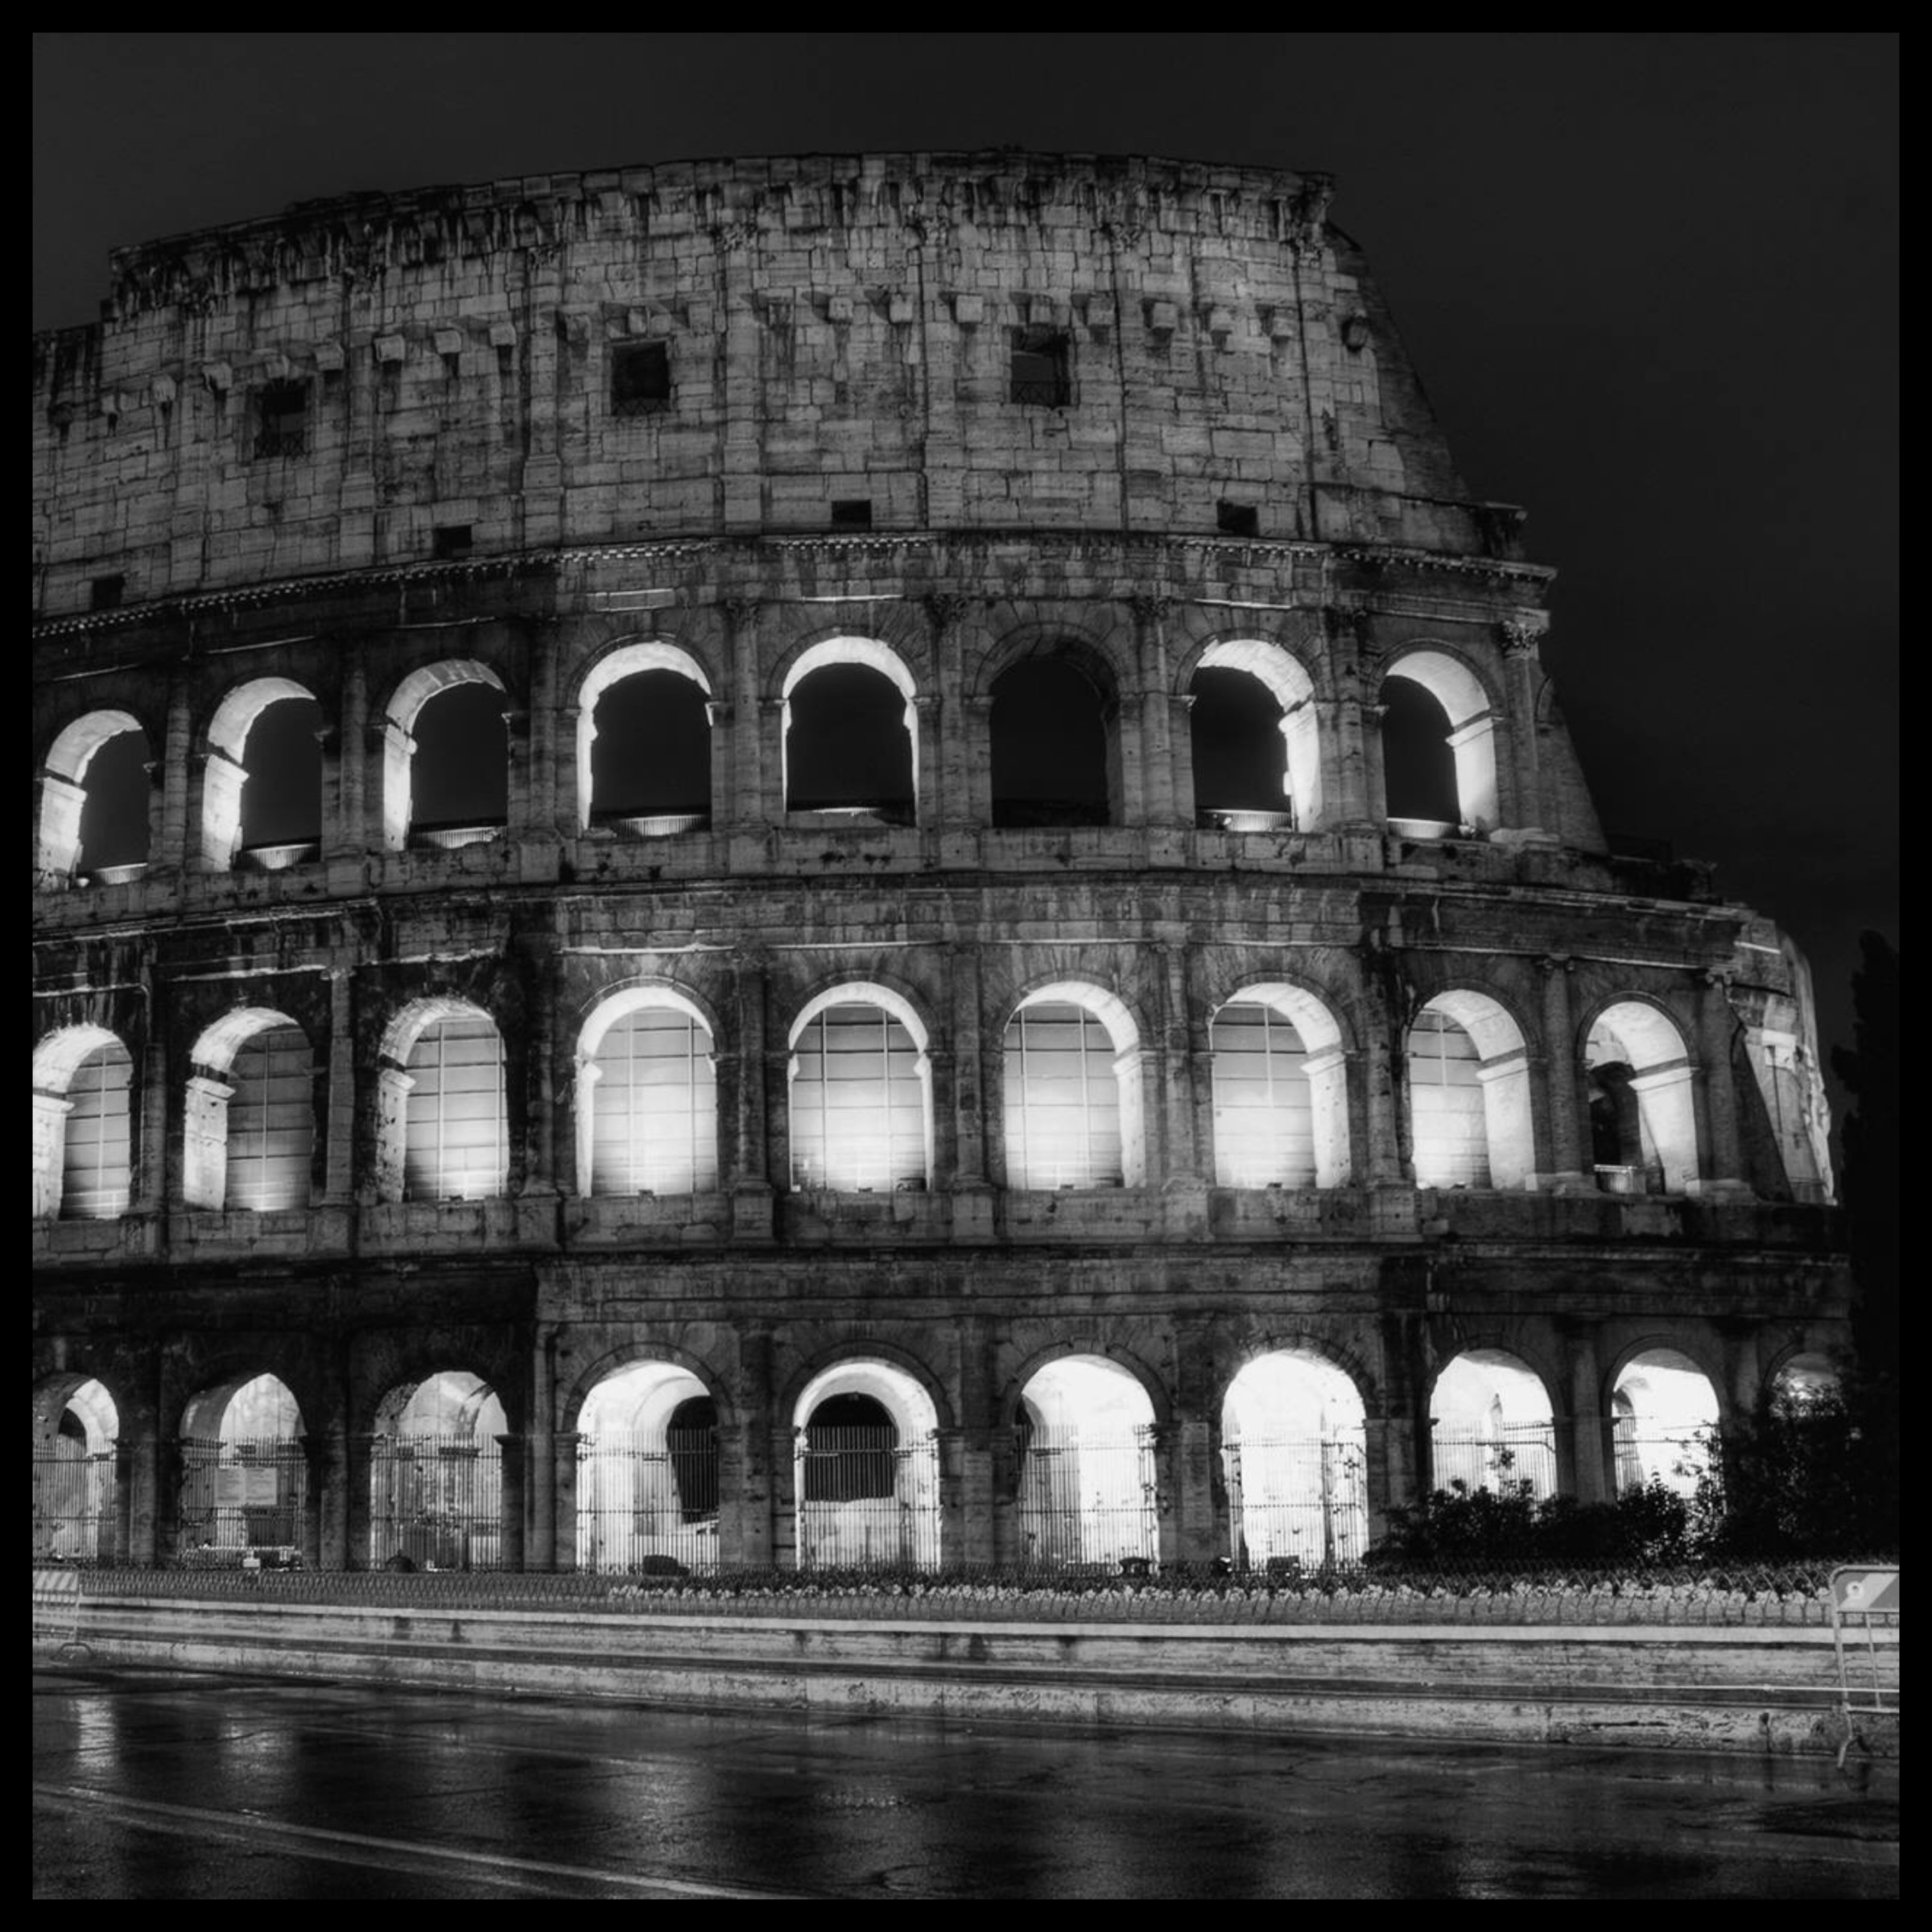 THE COLOSSEUM   MY FIRST GLIMPSE   1999